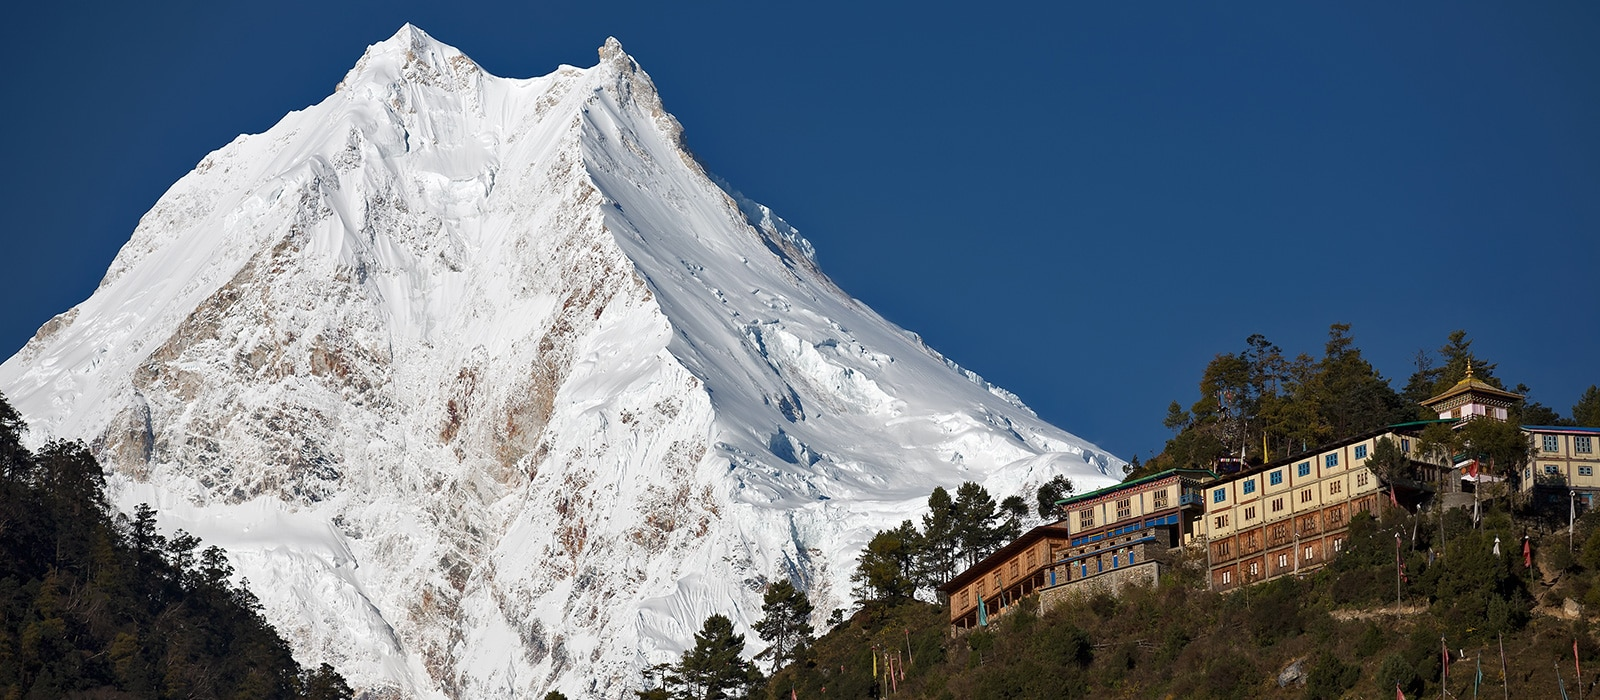 Manaslu Expedition – Nepal